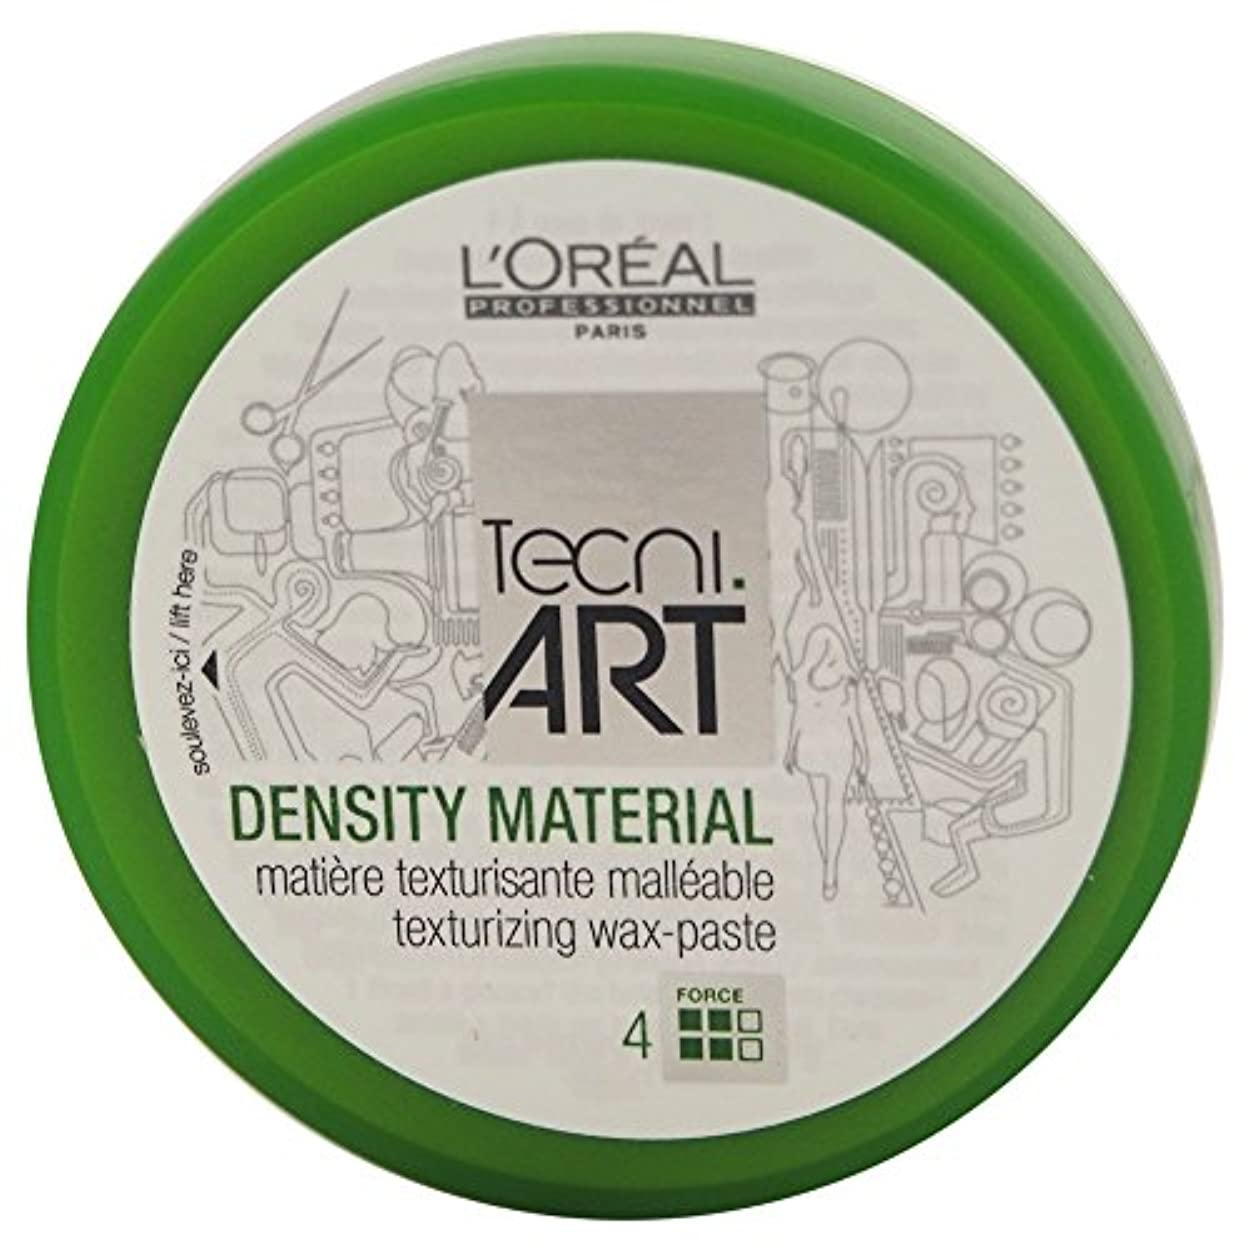 スツール飲料喉が渇いたLoreal Tecni Art Density Material Force 4 Texturizing Wax Paste 100ml [並行輸入品]